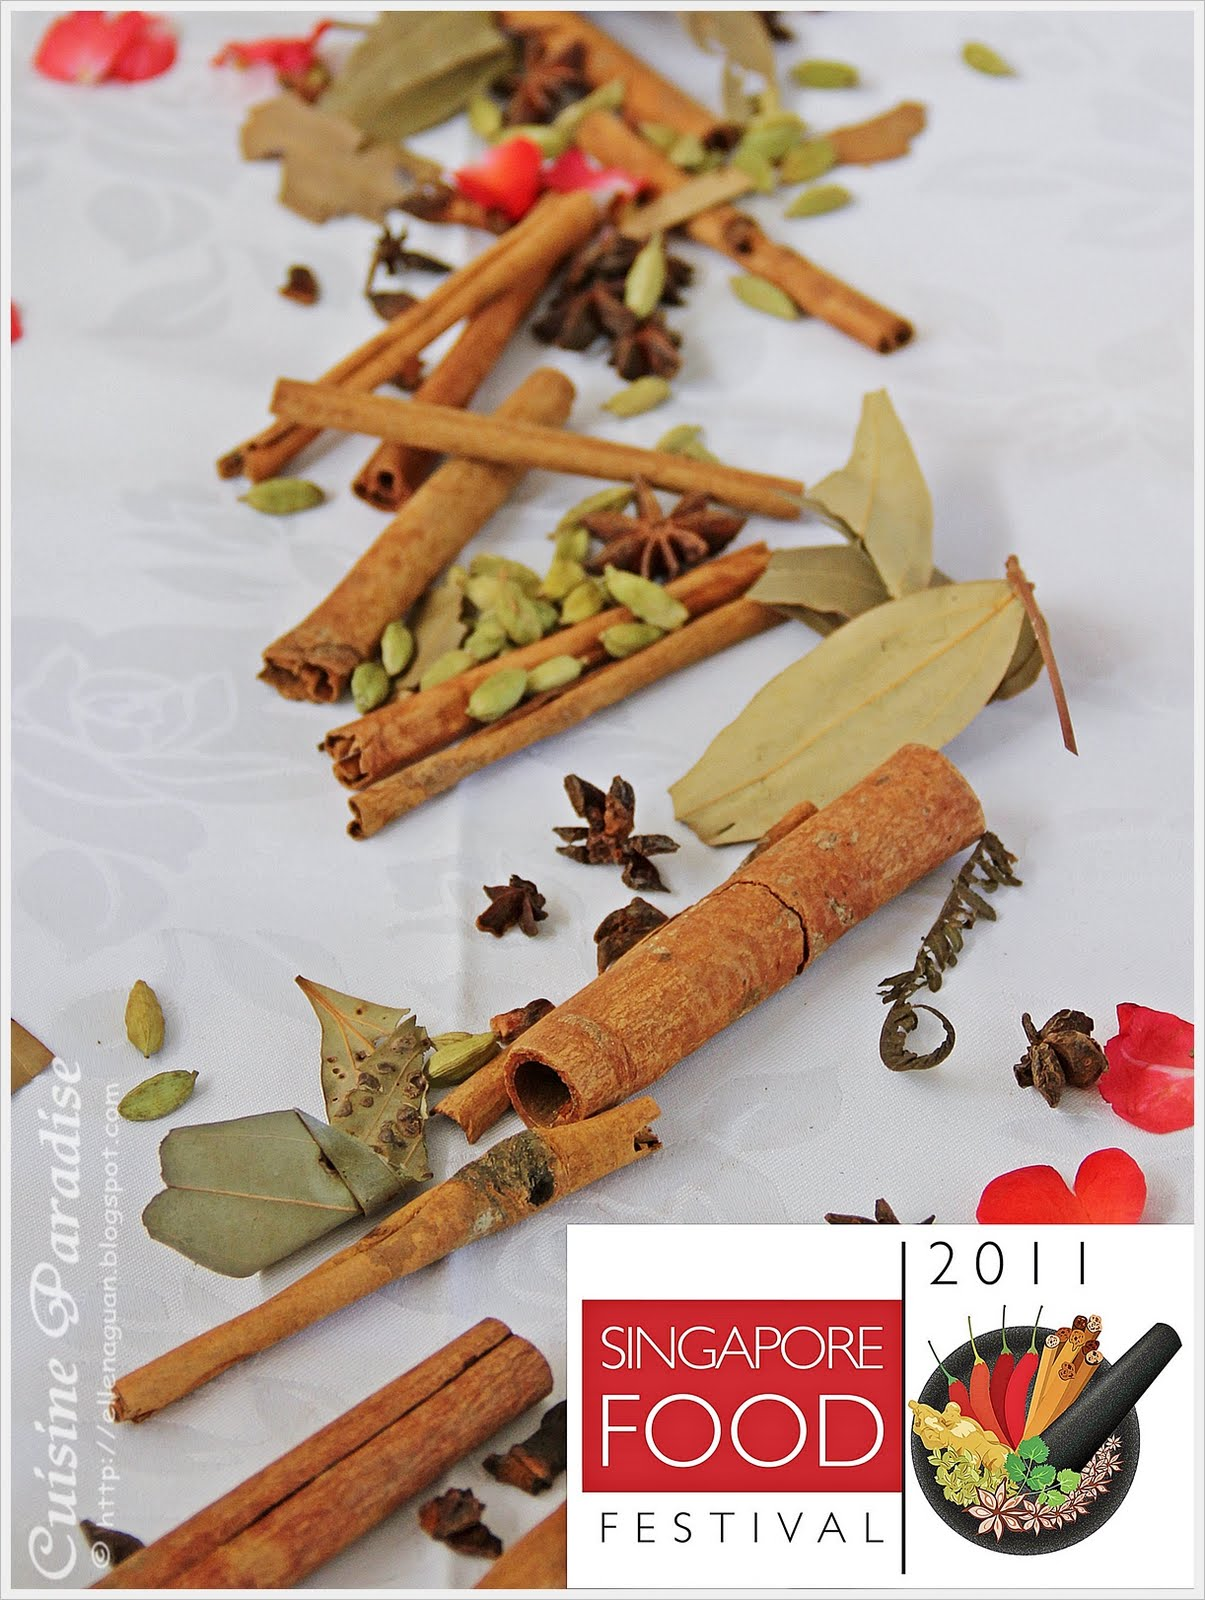 This Year The Singapore Food FestivalSFF 2011 Returns With Singapores Multicultural Heritage And Culinary Diversity Under Theme Of CURRY AND SPICES